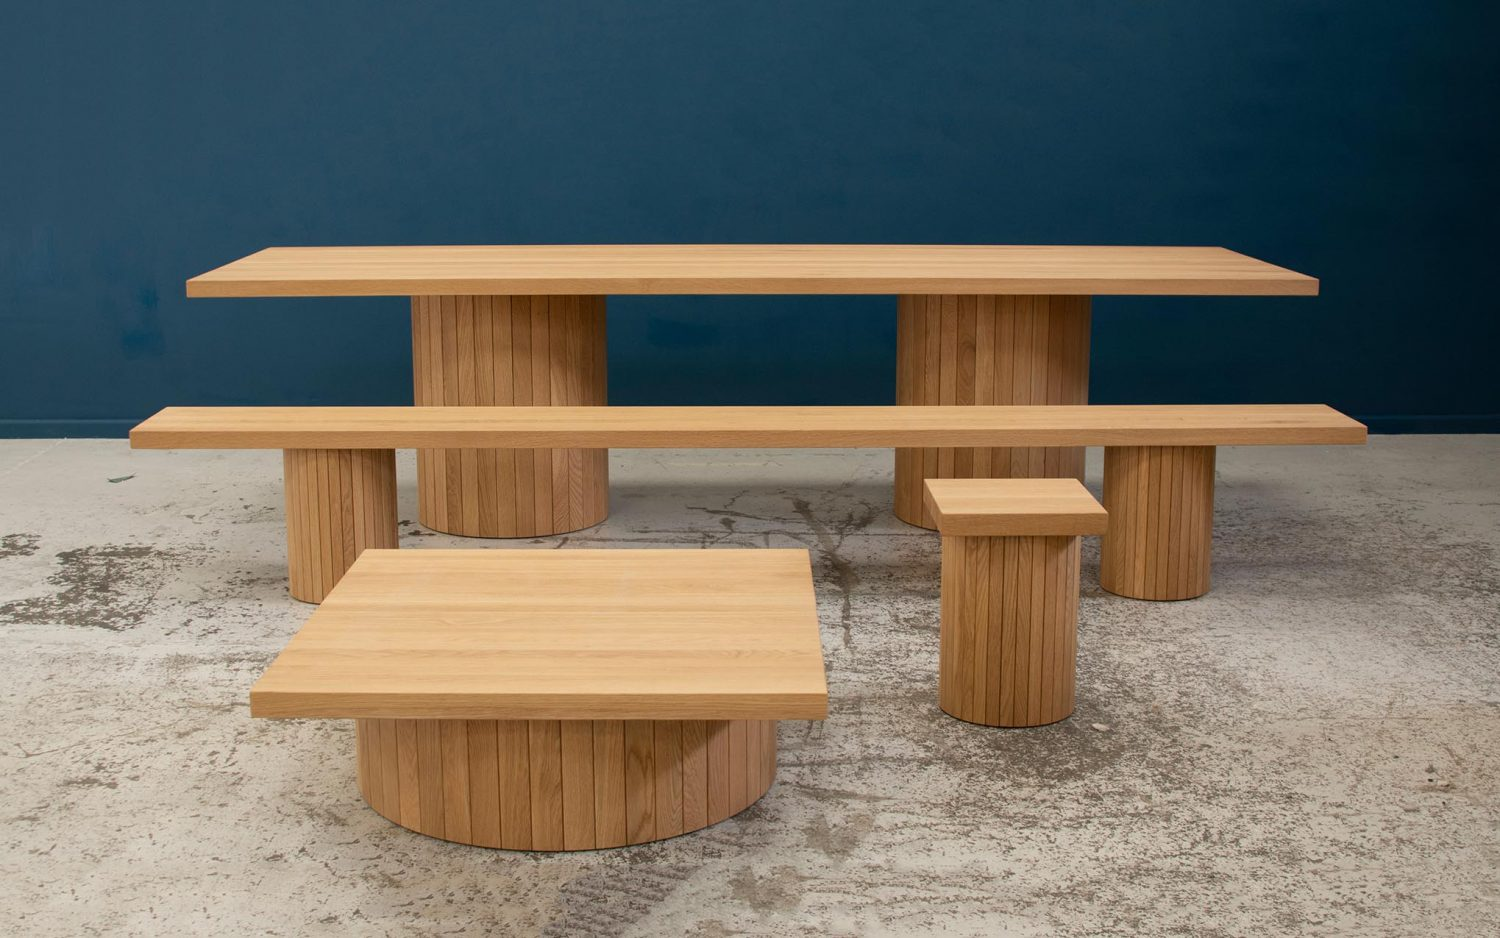 Philippe Malouin's Barrel collection for SCP uses solid oak planks to form barrel-like bases across a range of tables.